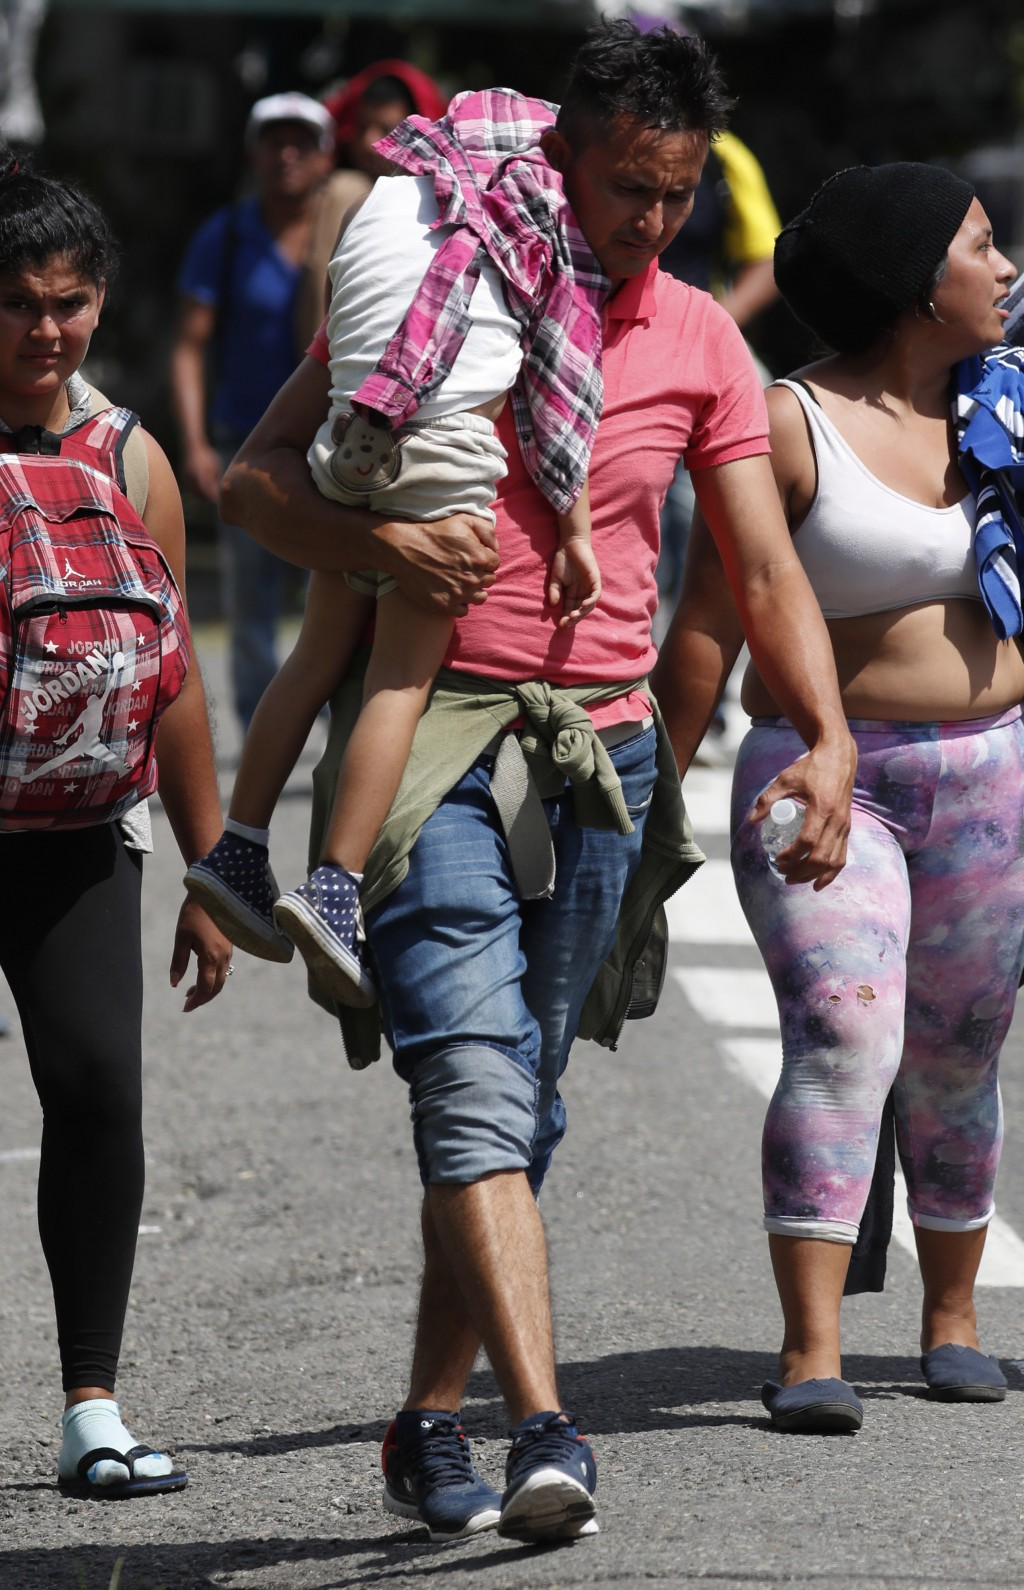 A Central American migrant carrying a child walks with a caravan making its way to the U.S., upon arrival to Tapachula, Mexico, Sunday, Oct. 21, 2018.